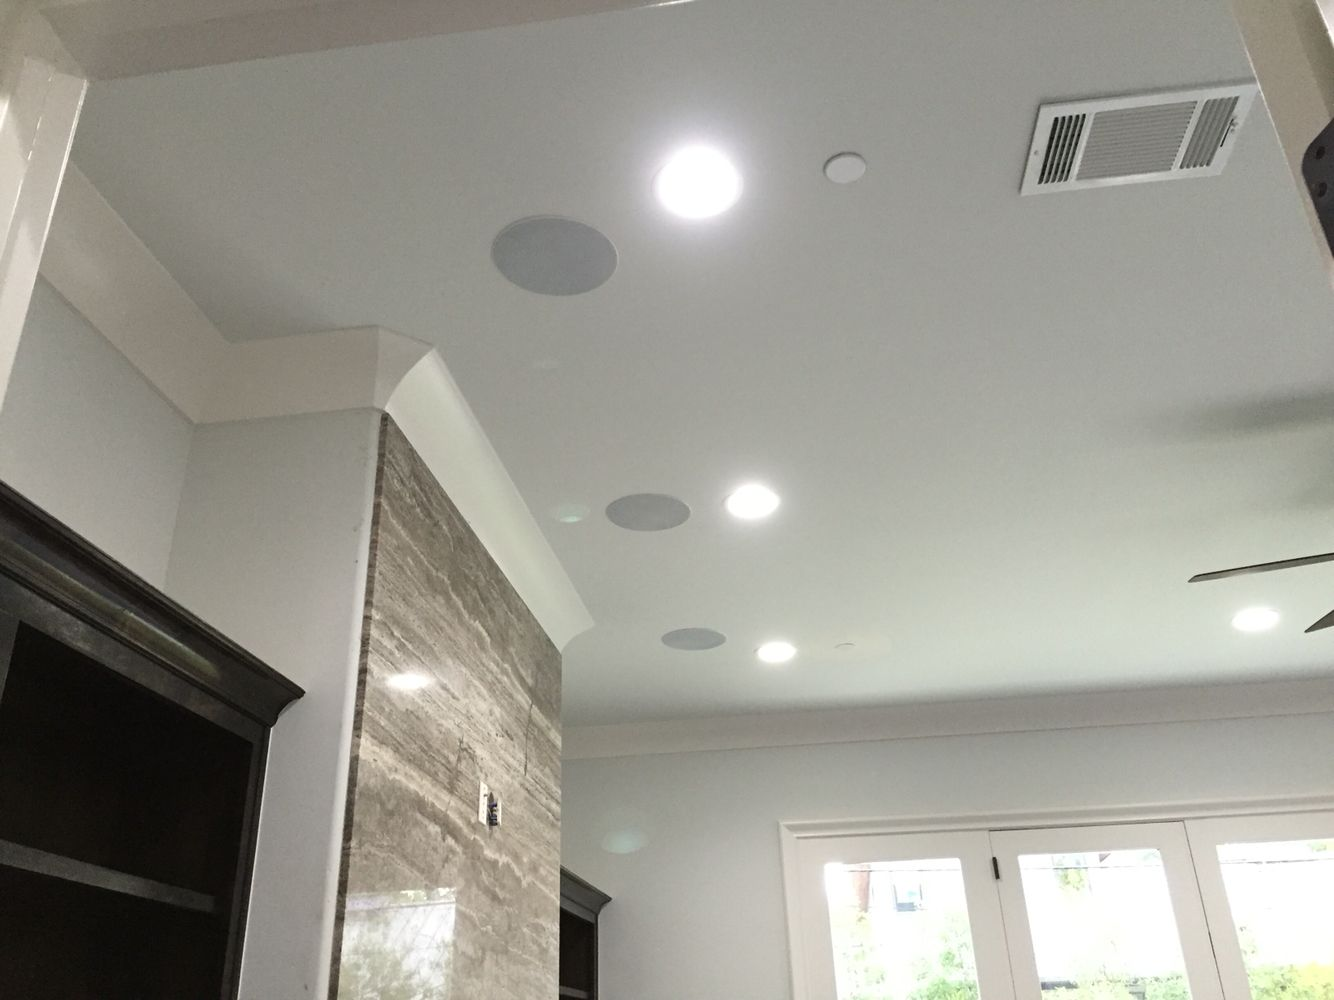 Roof speakers in wall u0026 in ceiling speaker installation toronto leslievillegeek tv - Ideal ceiling height for a house what matters ...